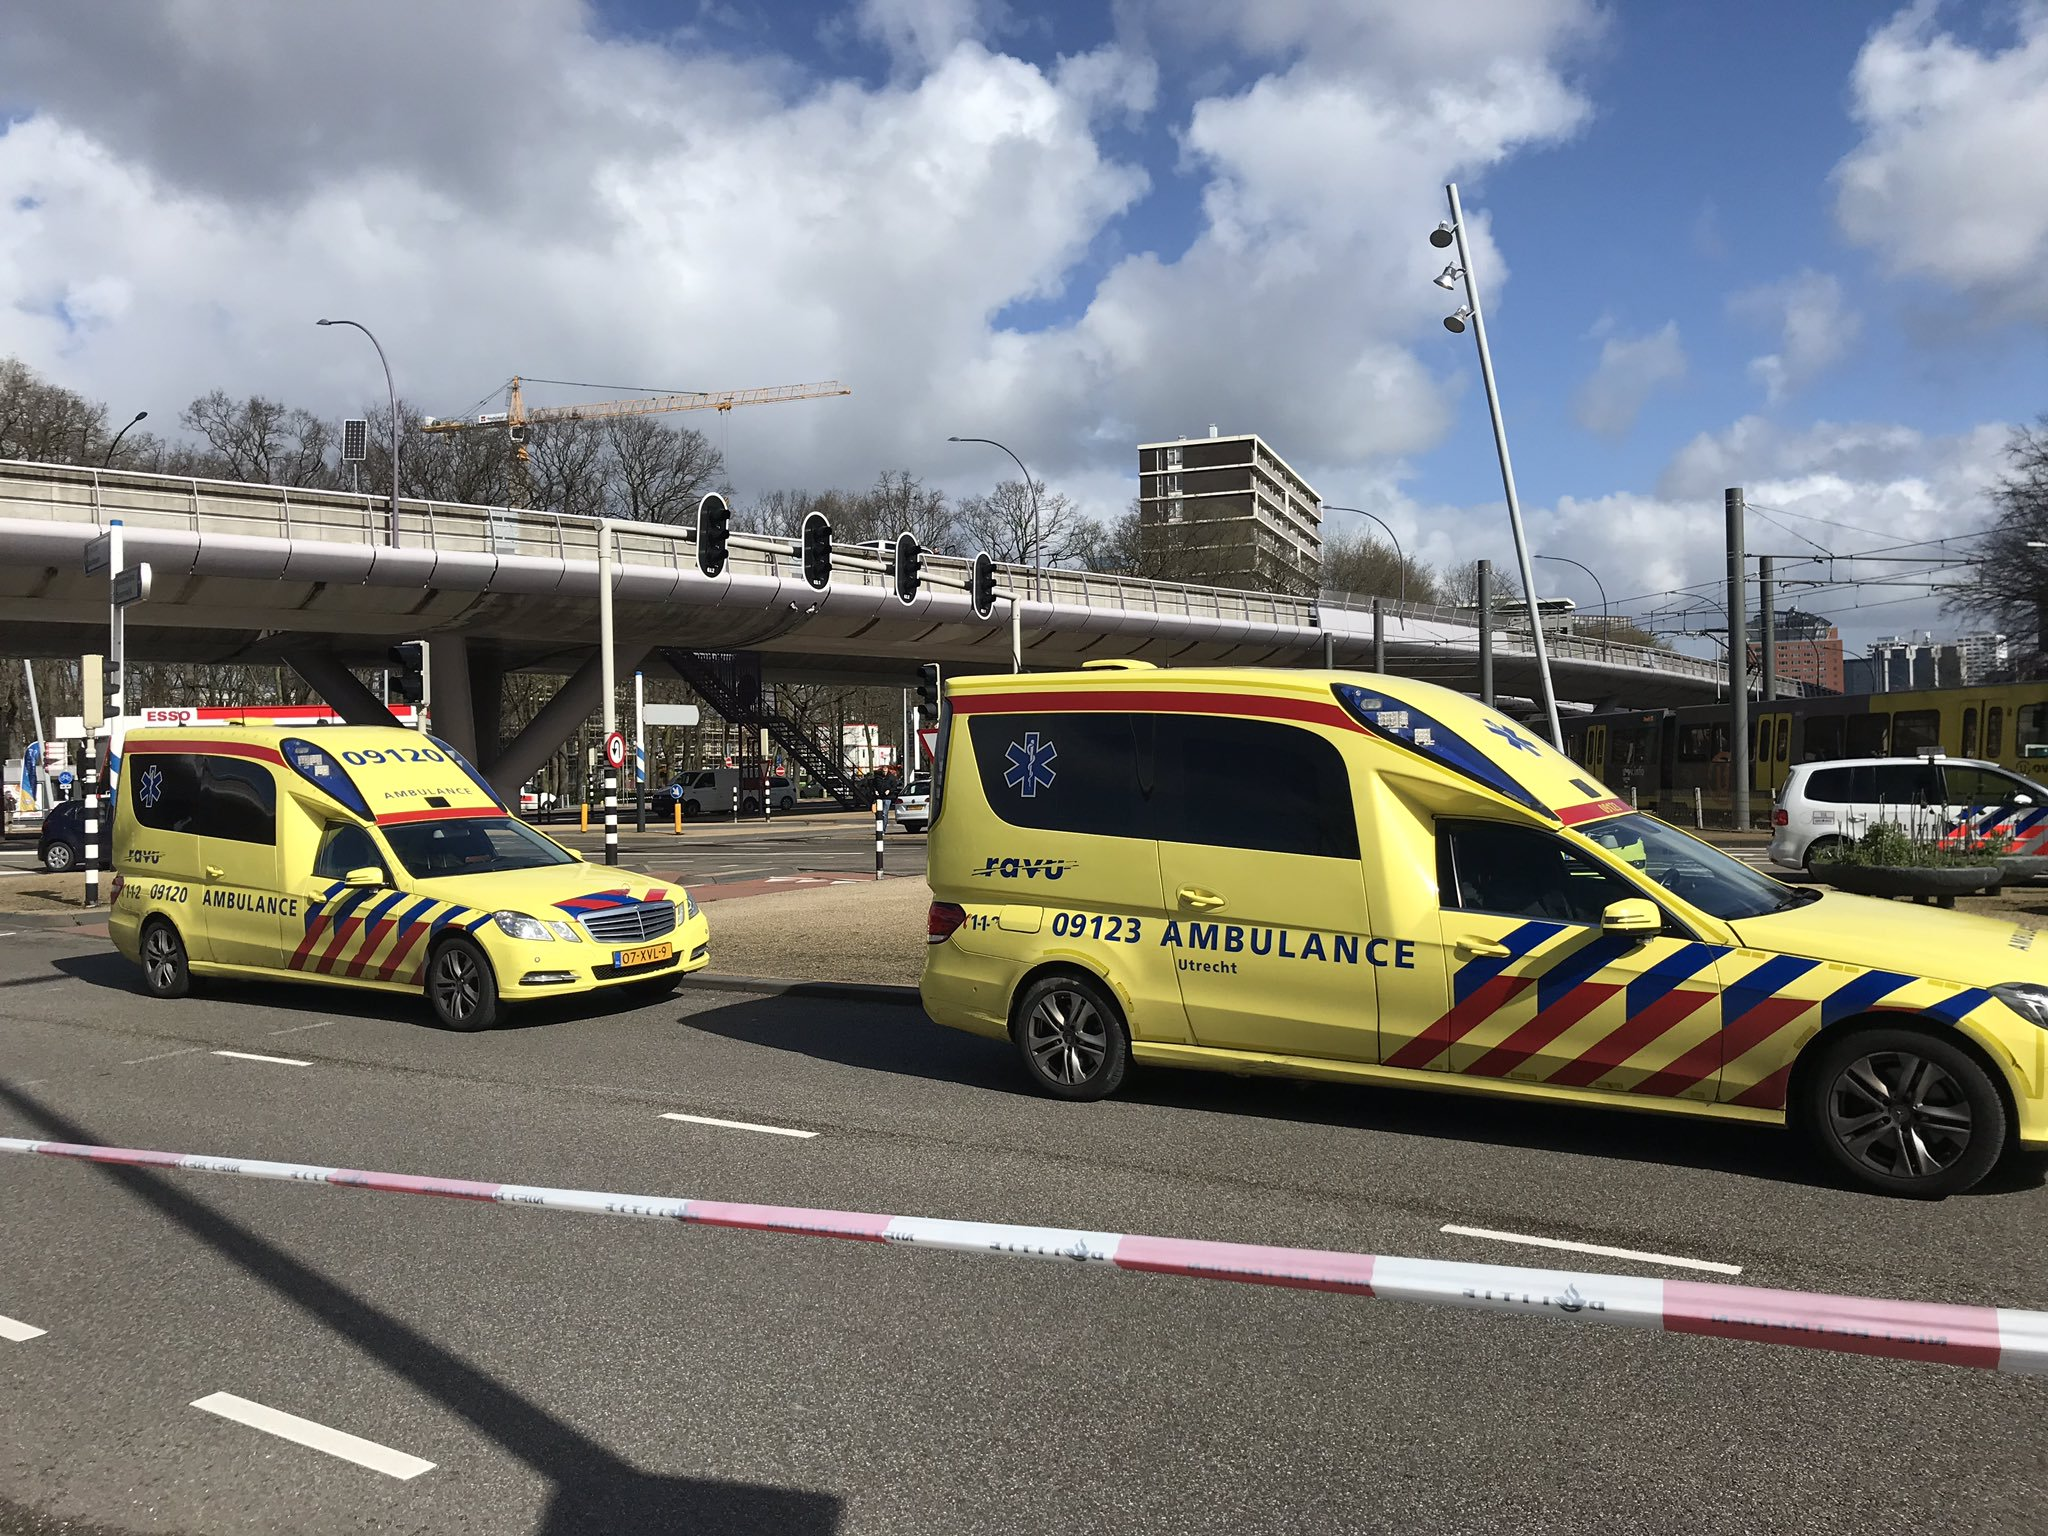 Three dead, nine injured in Utrecht shooting: mayor